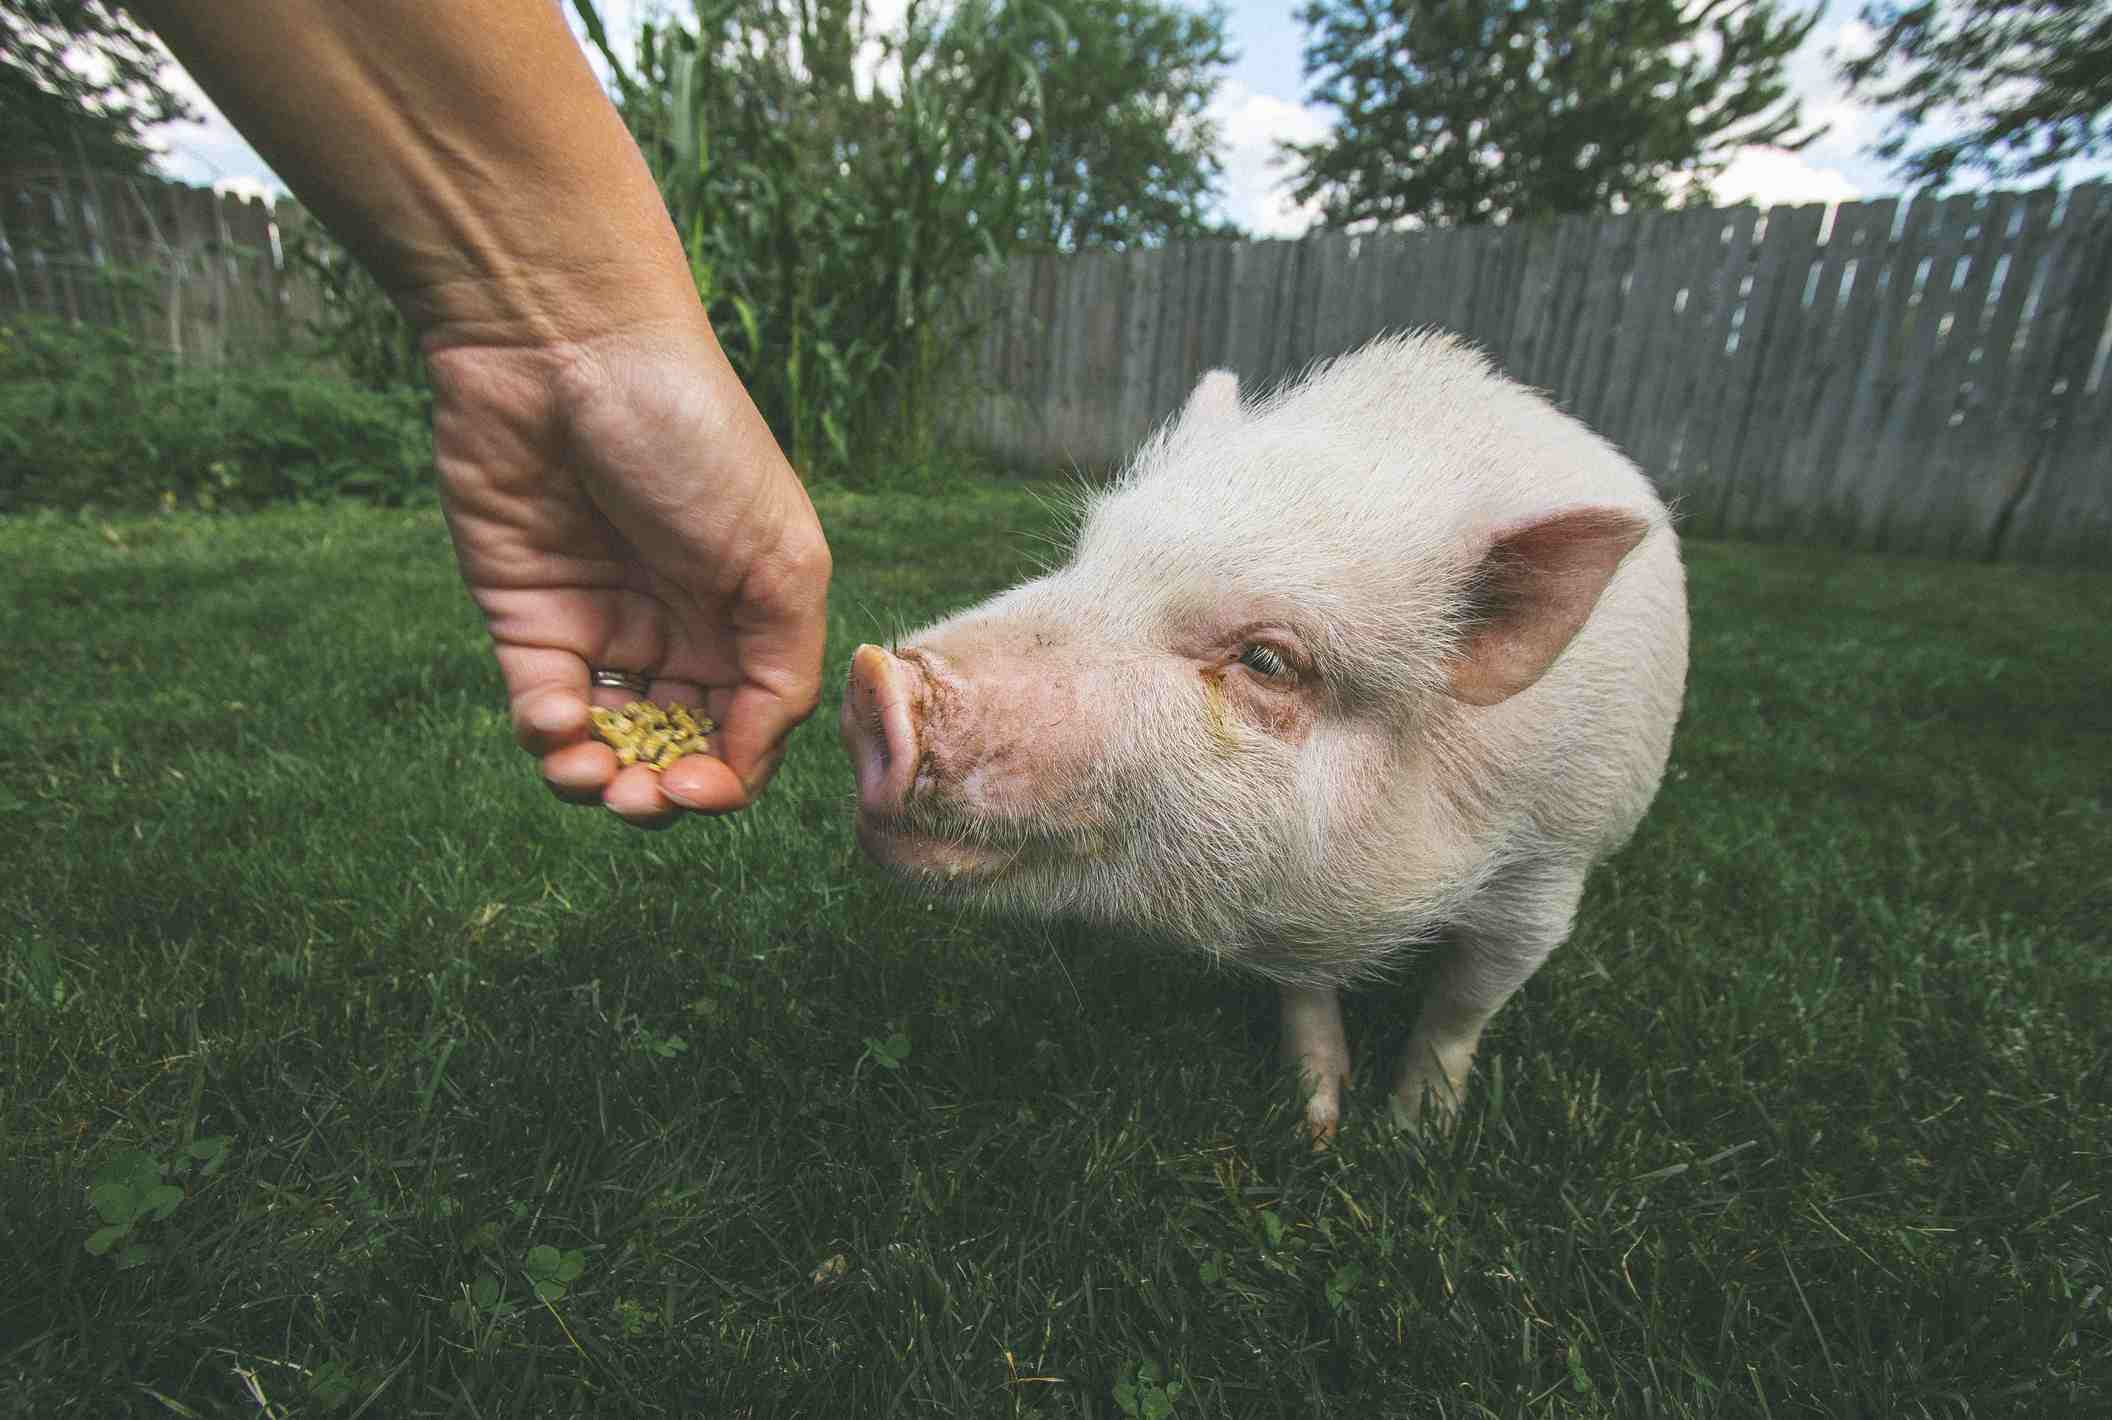 Pig taking food from a hand outside in grass.